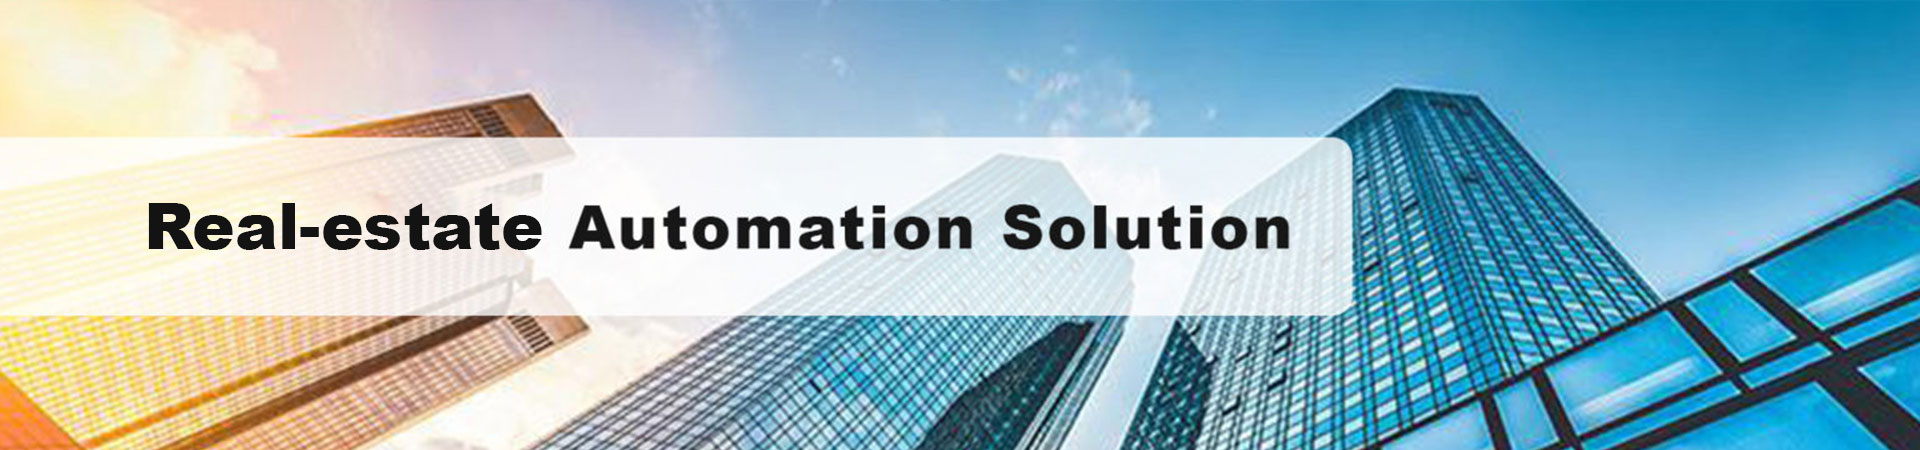 Real-estate Automation Solution